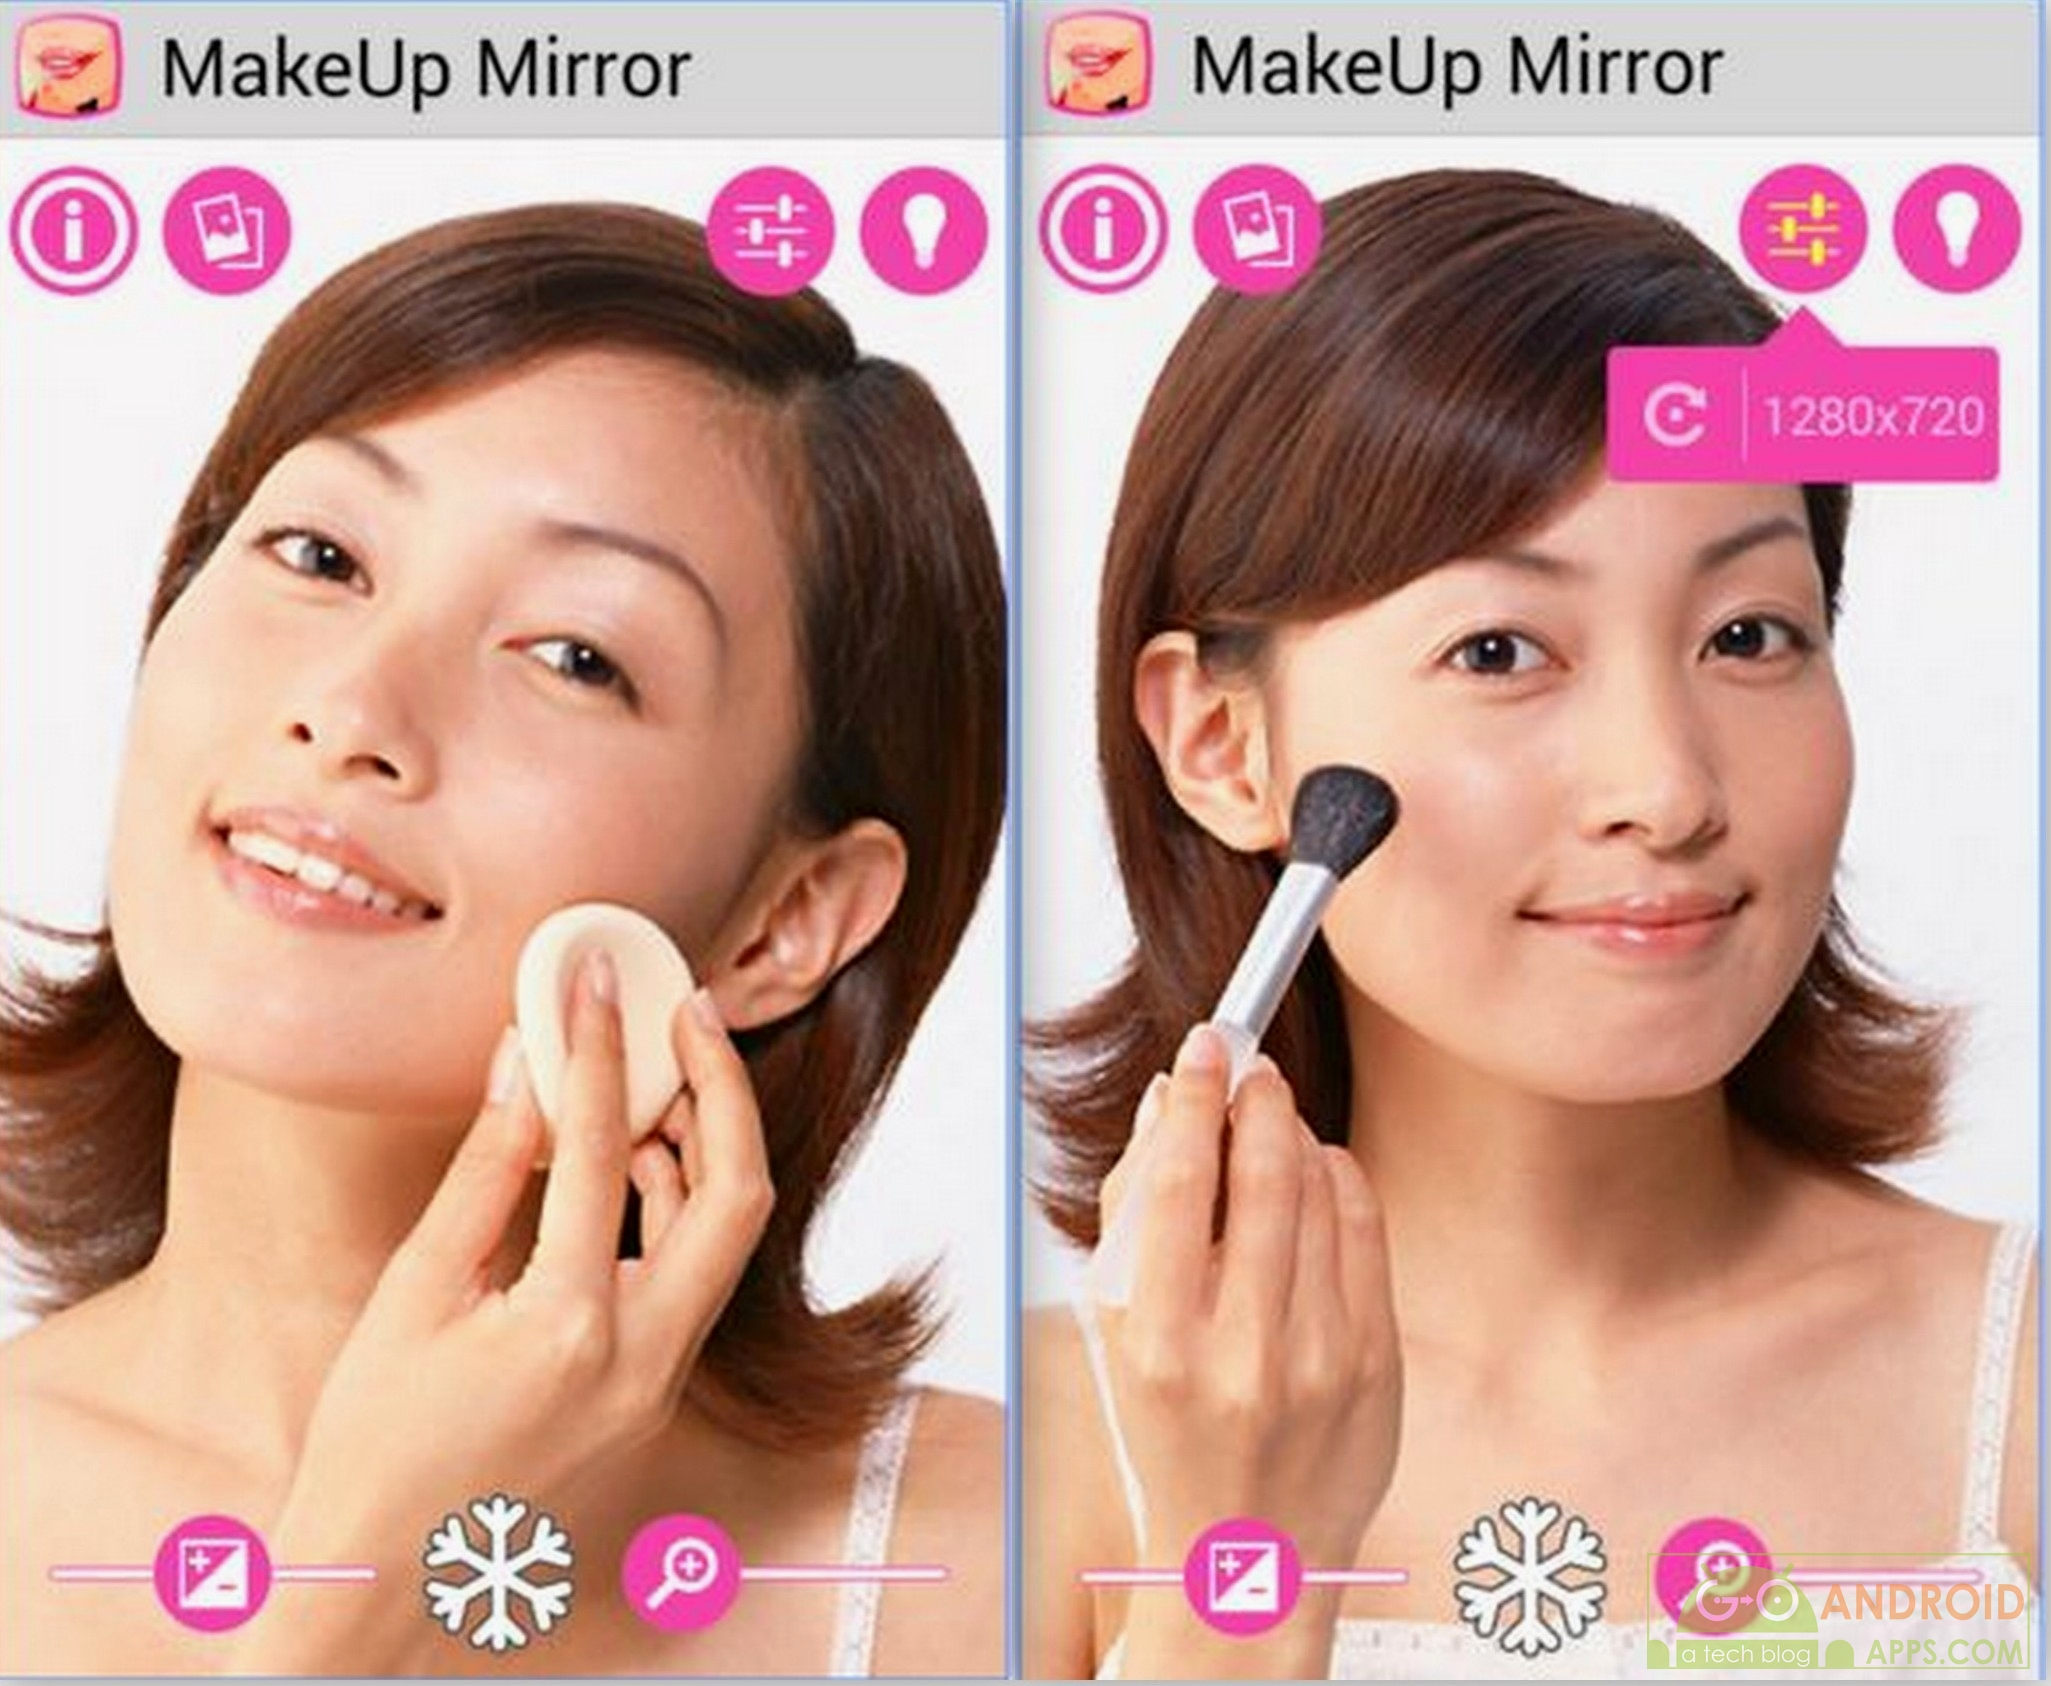 Top 5 Best Android Mirror Apps For Makeup